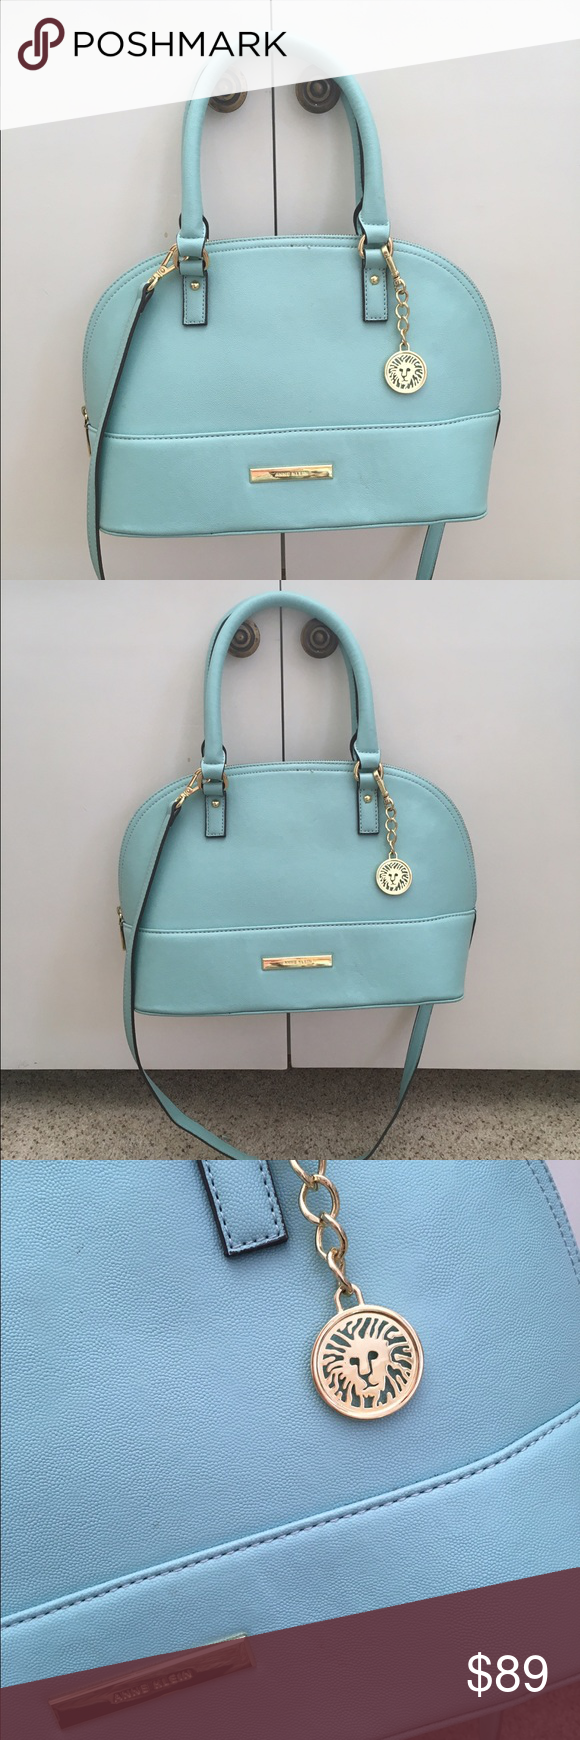 NWOT Anne Klein alma dome bag satchel crossbody New without tags Anne Klein alma style dome handbag with cross body option in excellent condition only blemish is a smudge on the fabric of the zipper near the handle. KV0020 Anne Klein Bags Satchels